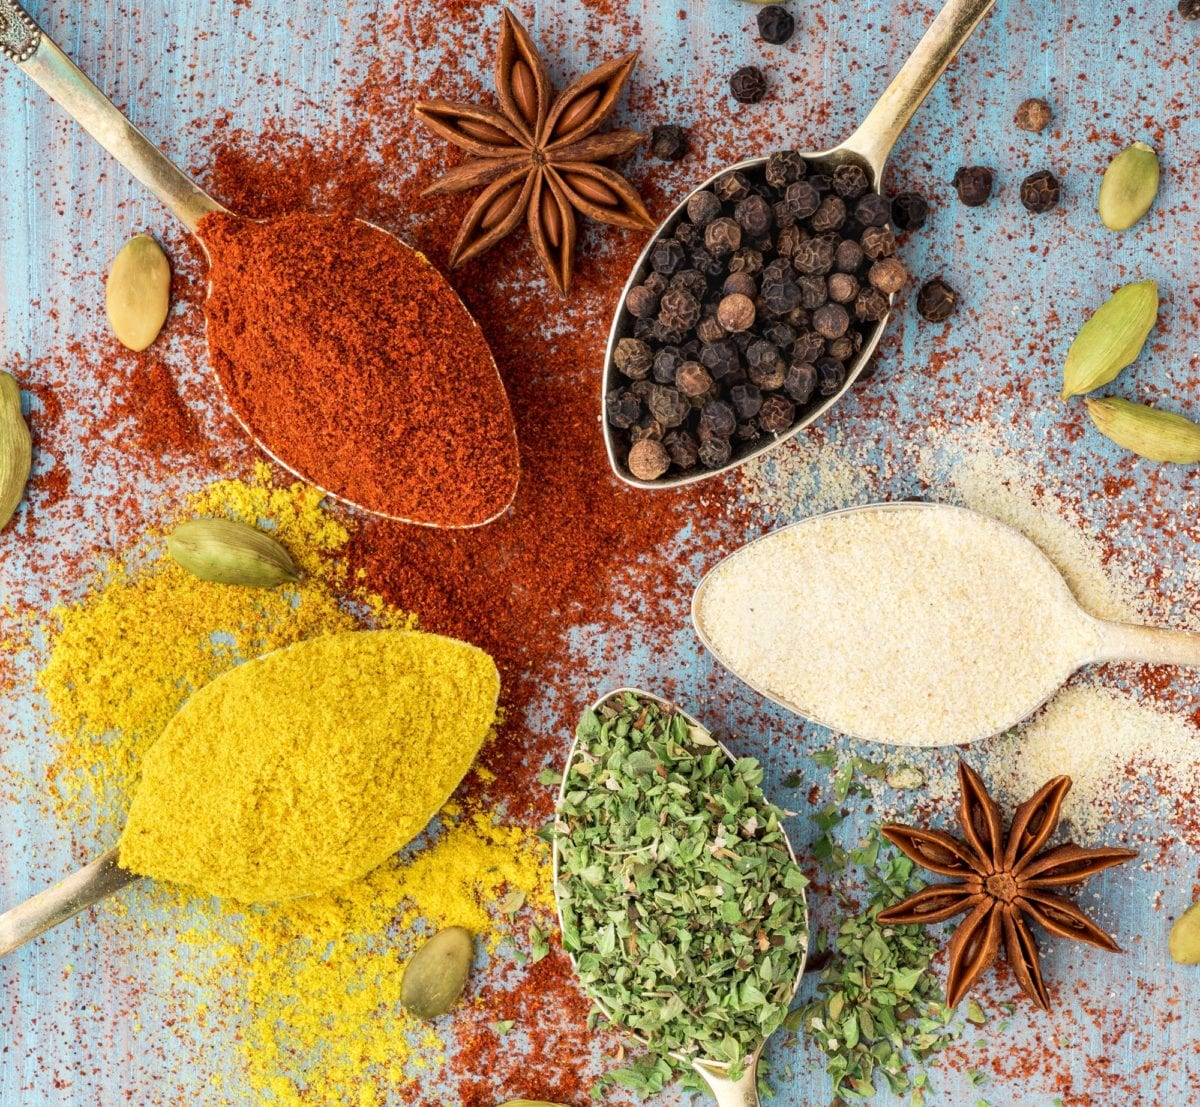 4 herbs and spices that enhance the flavor of your food